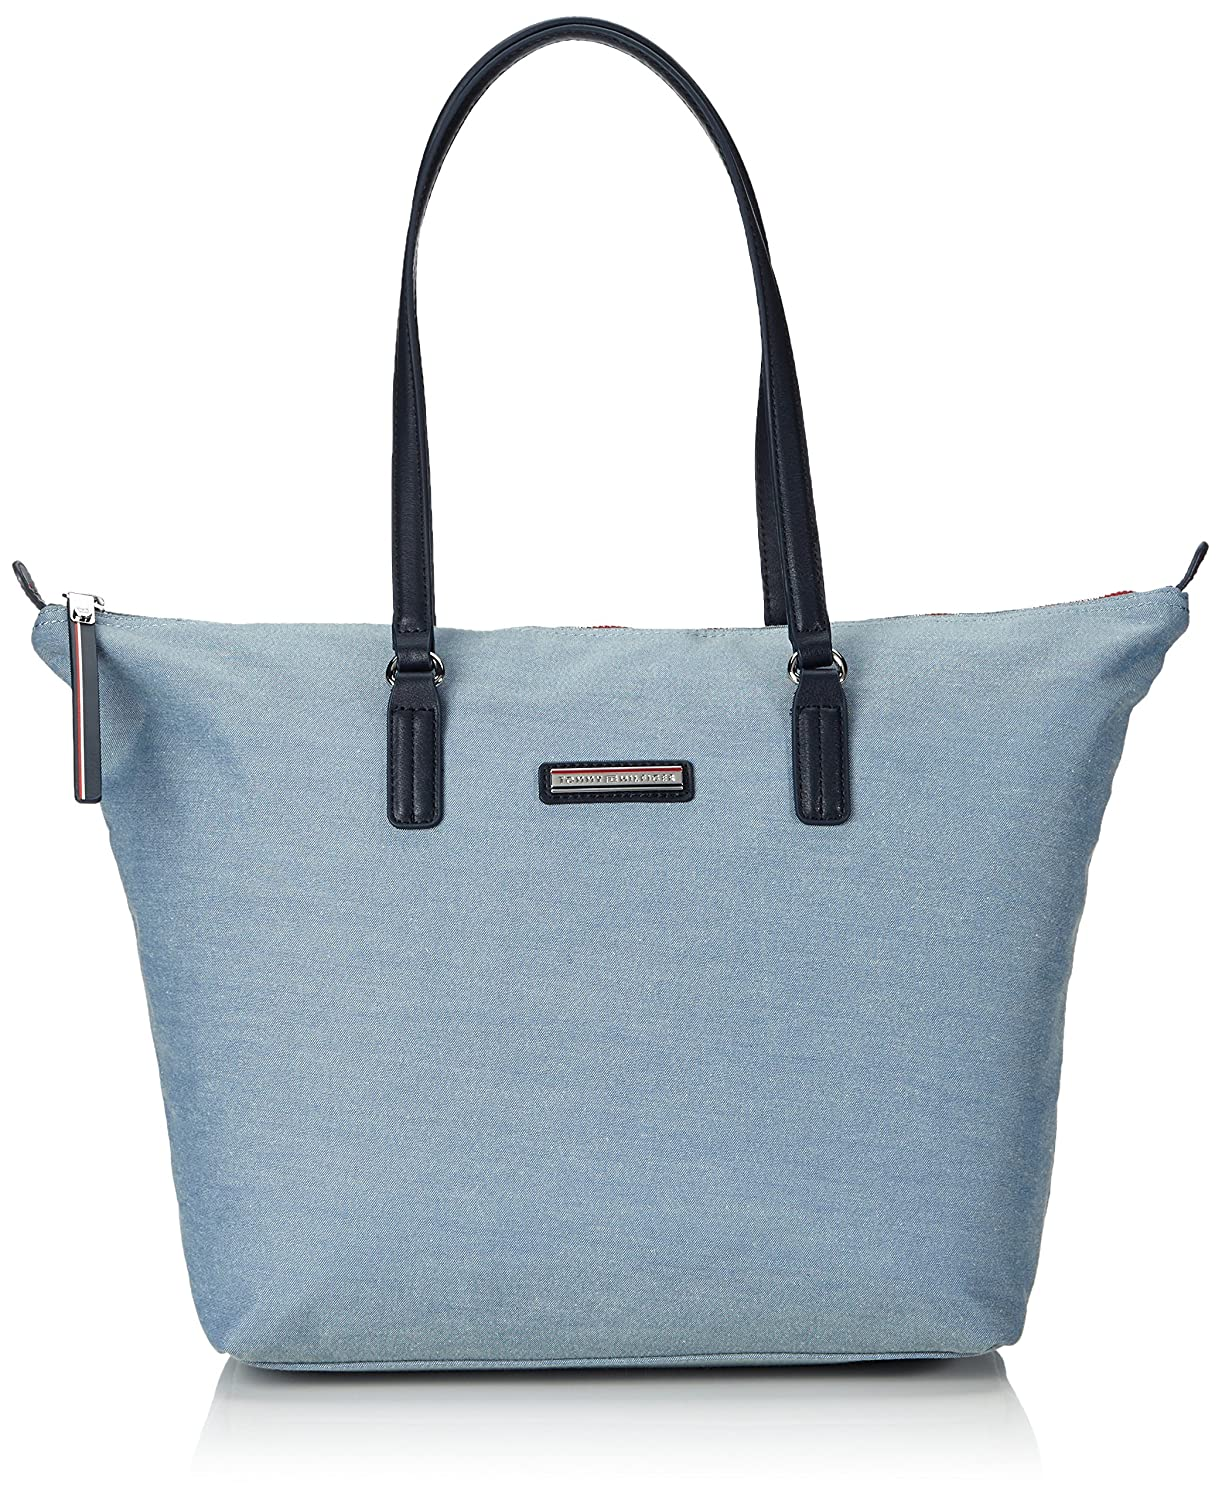 Tommy Hilfiger Poppy Tote Chambray , Bolso para mujer, color chambray midnight, talla OS Amazon.es Zapatos y complementos